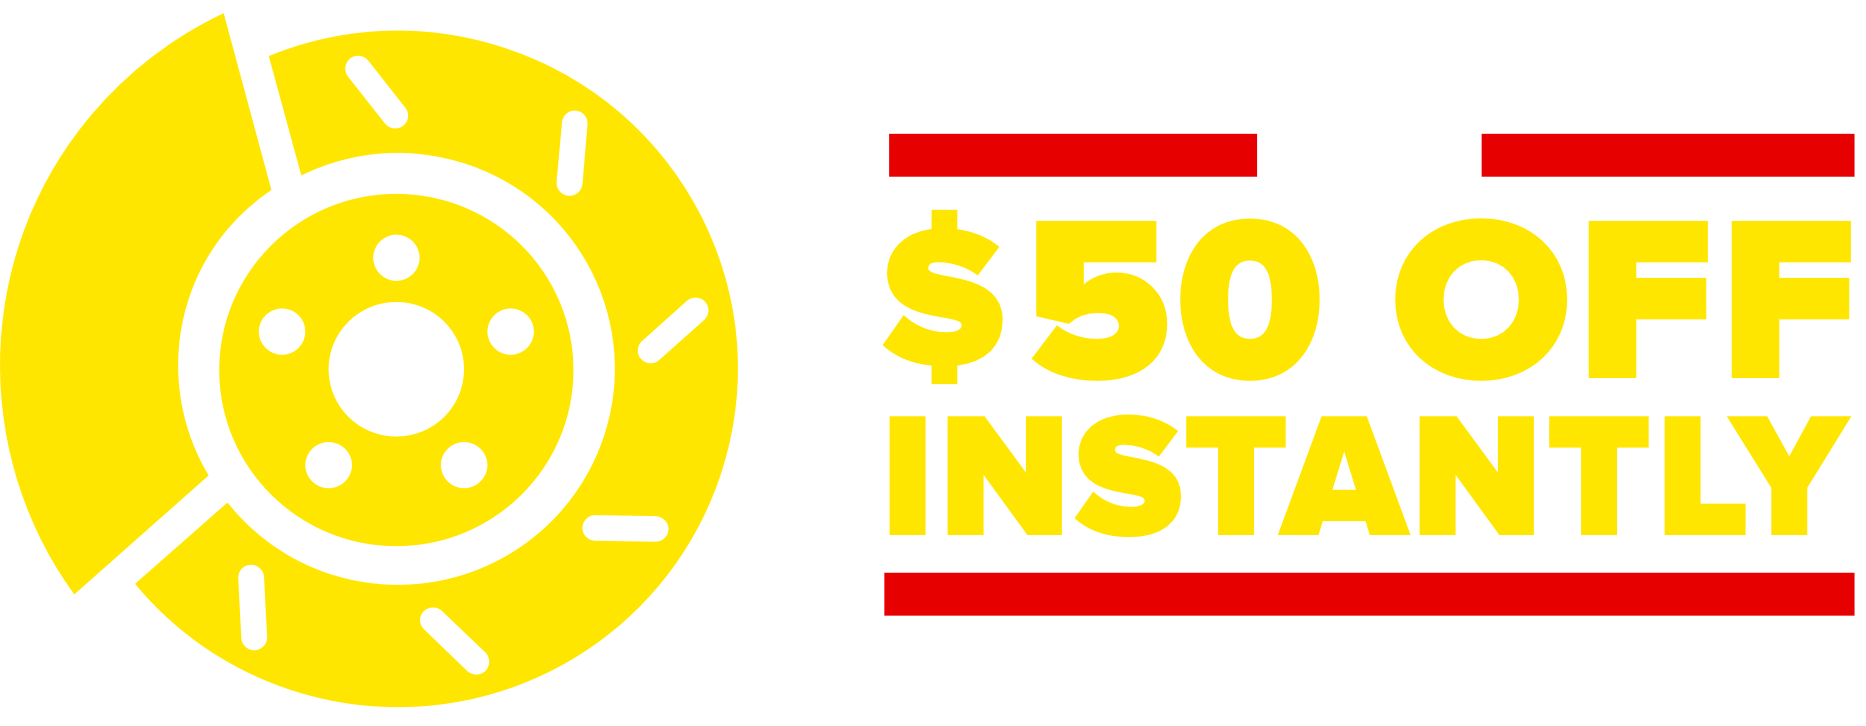 Get up to $50 off brake pads or shoes. Lifetime guarantee. $25 off per axle. Installation required.